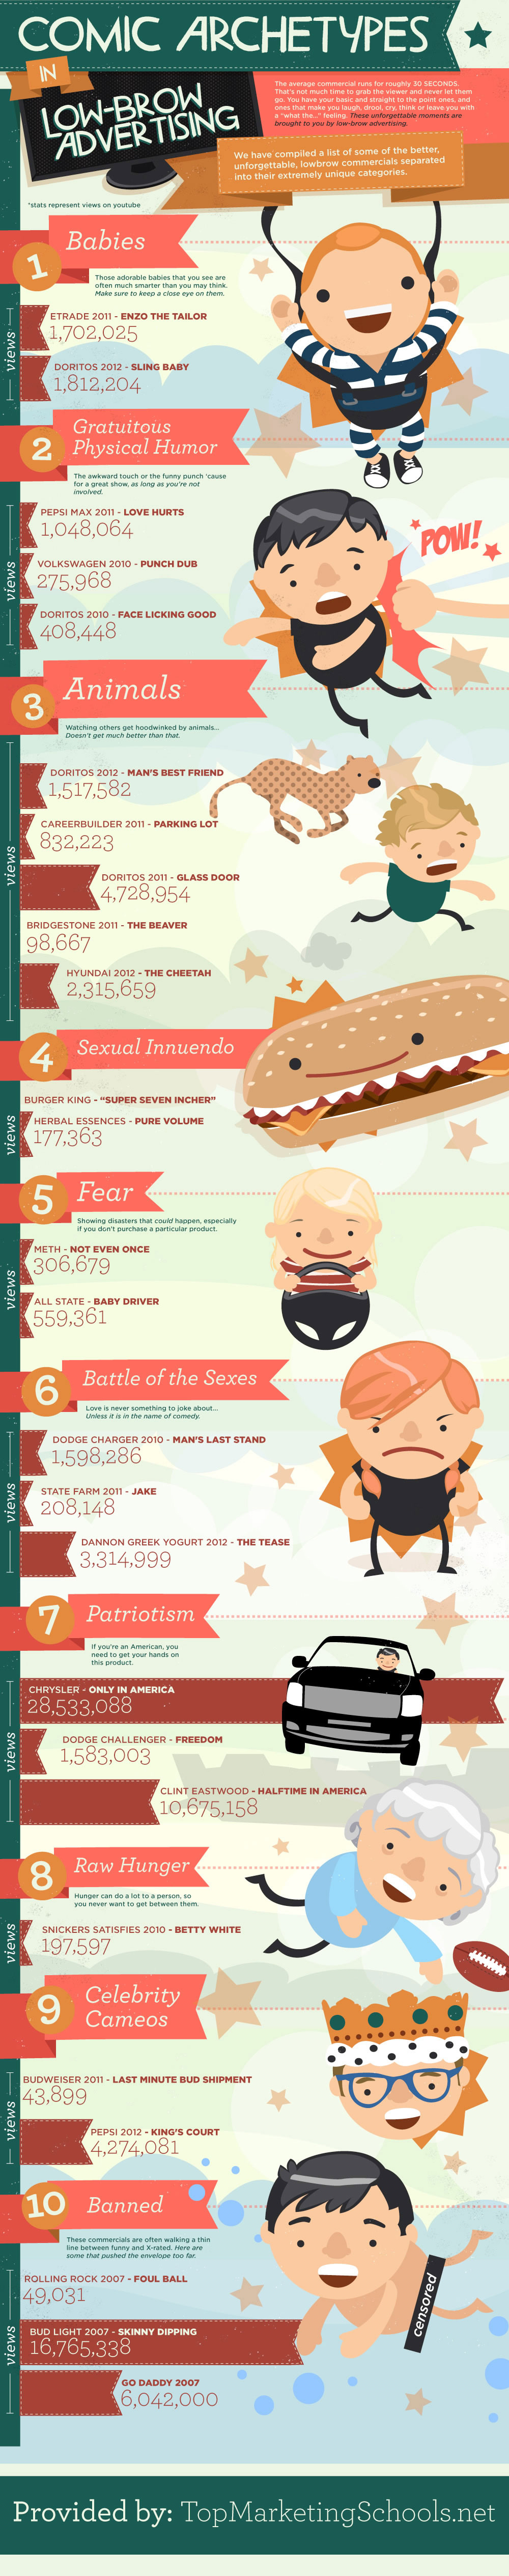 low brow advertising The Art of Low Brow Advertising [INFOGRAPHIC]